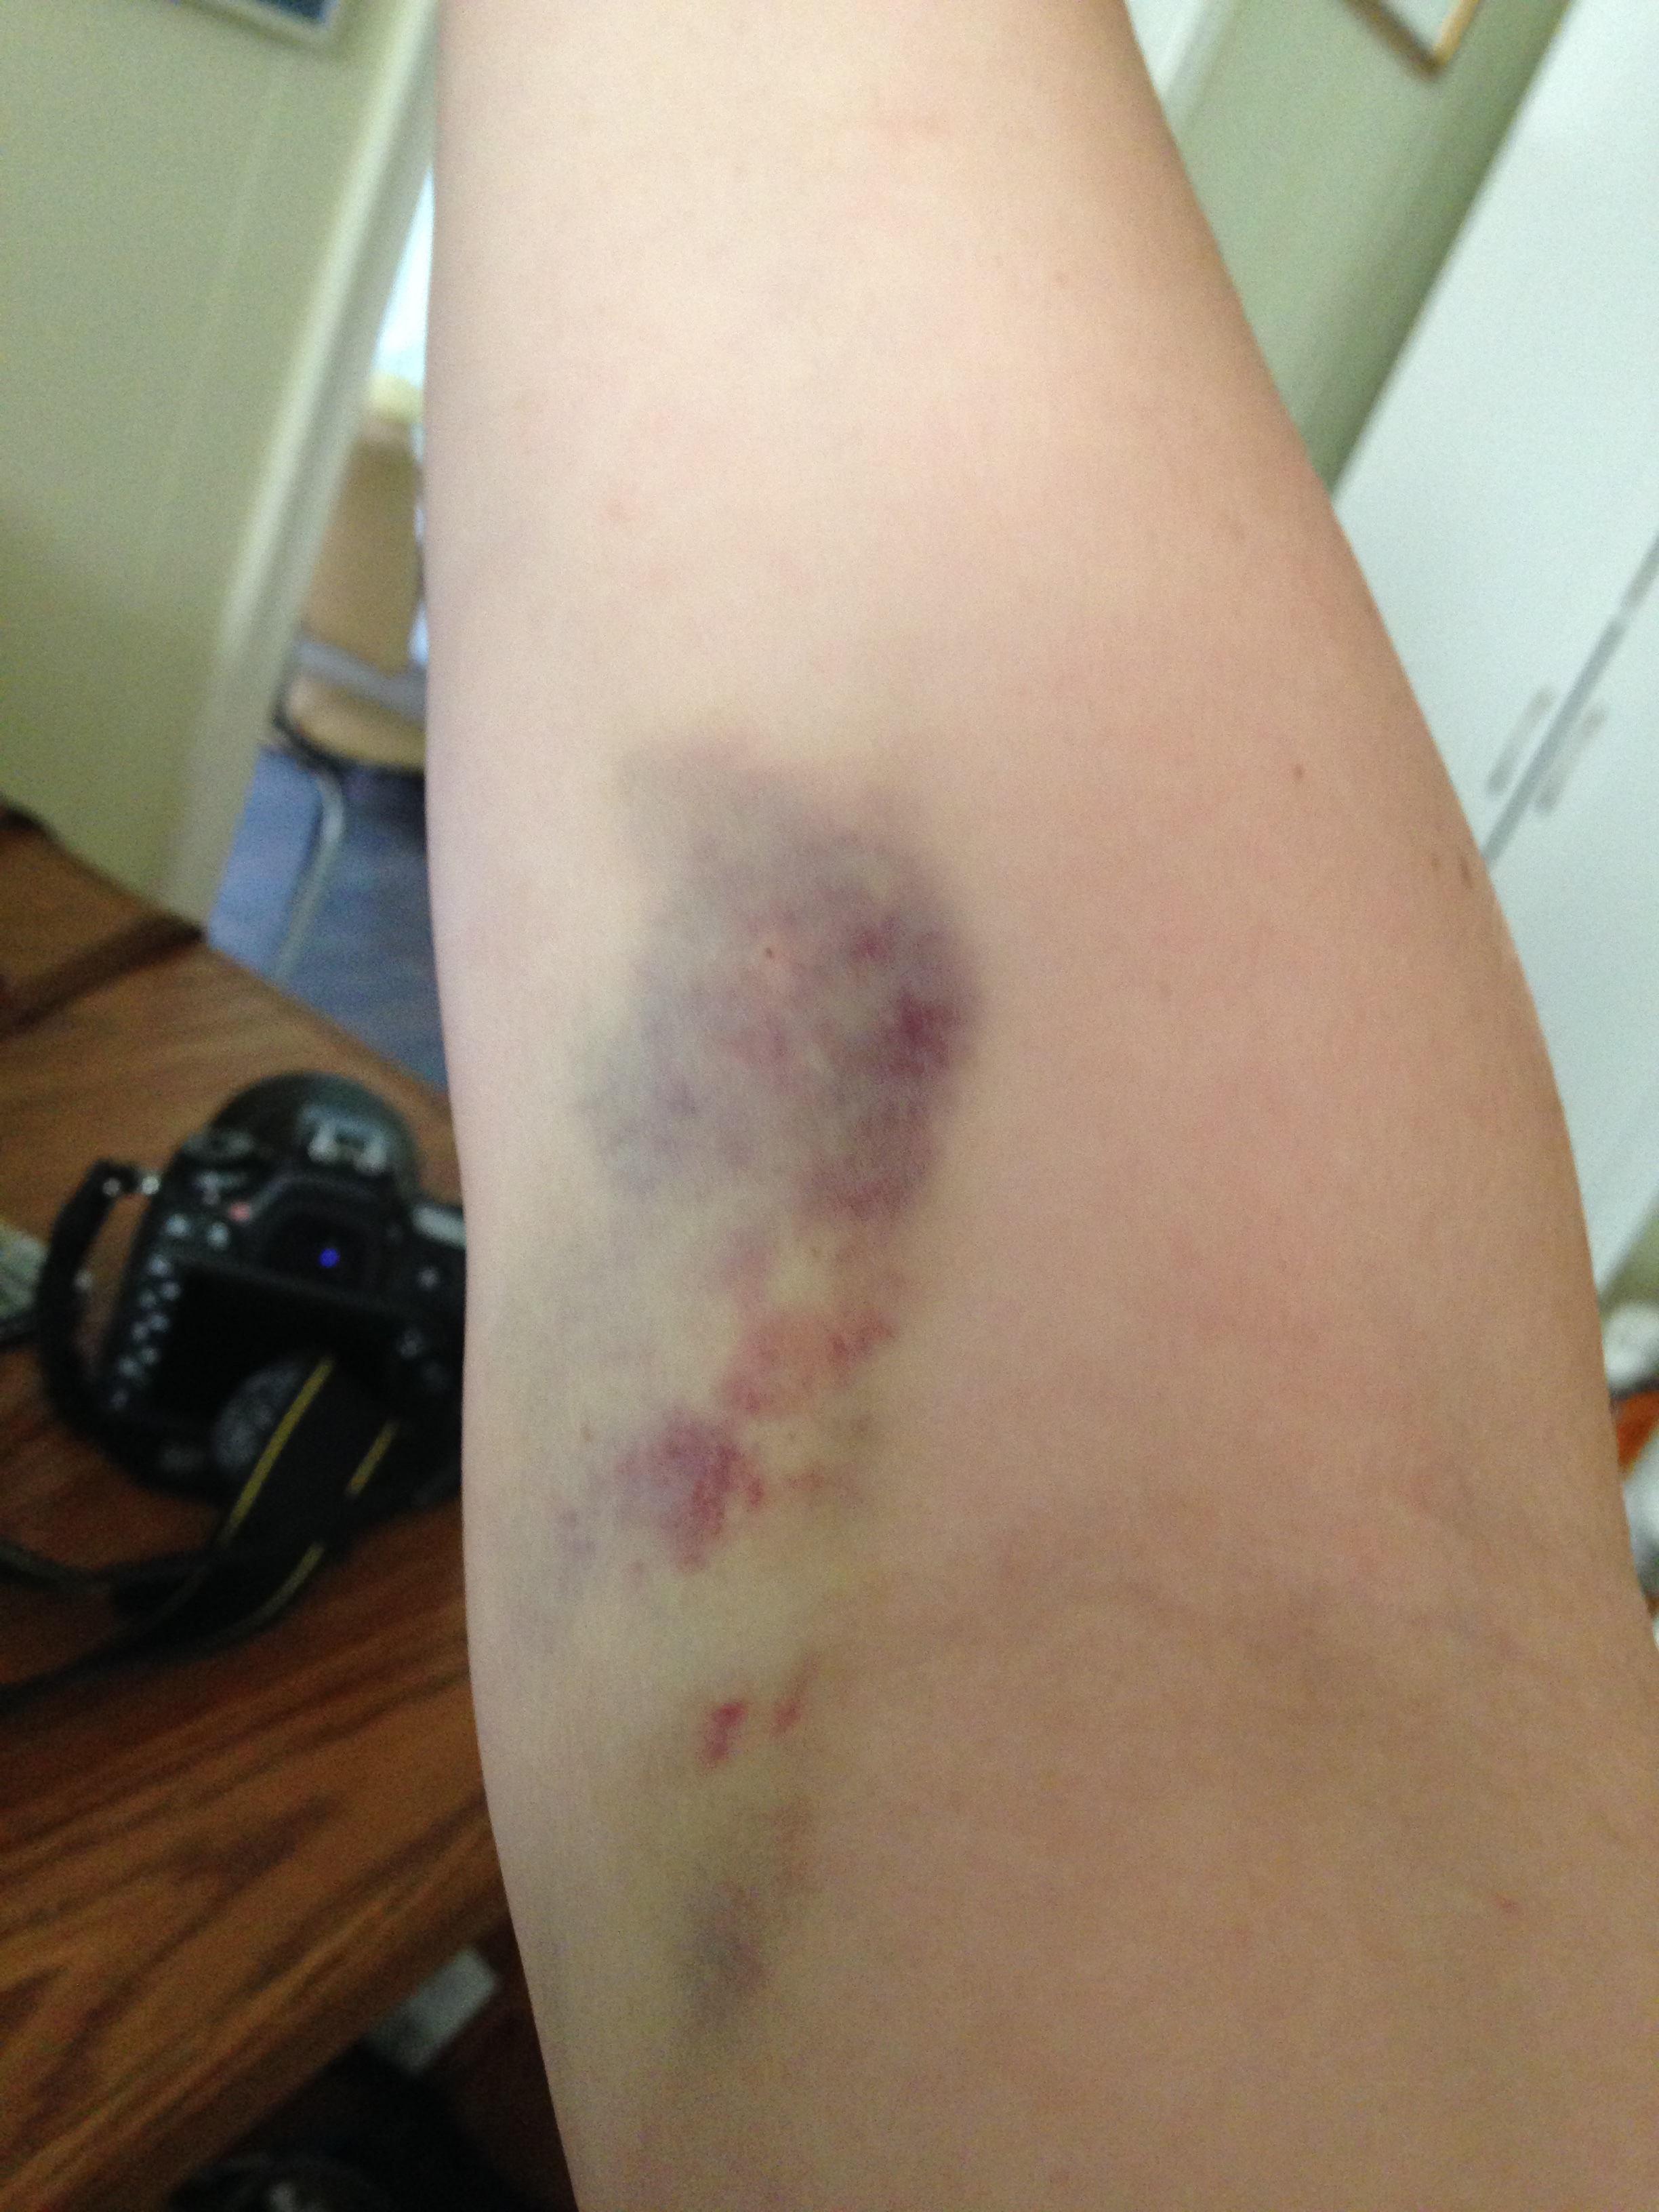 The result of having my blood drawn 7 times in 3 days.